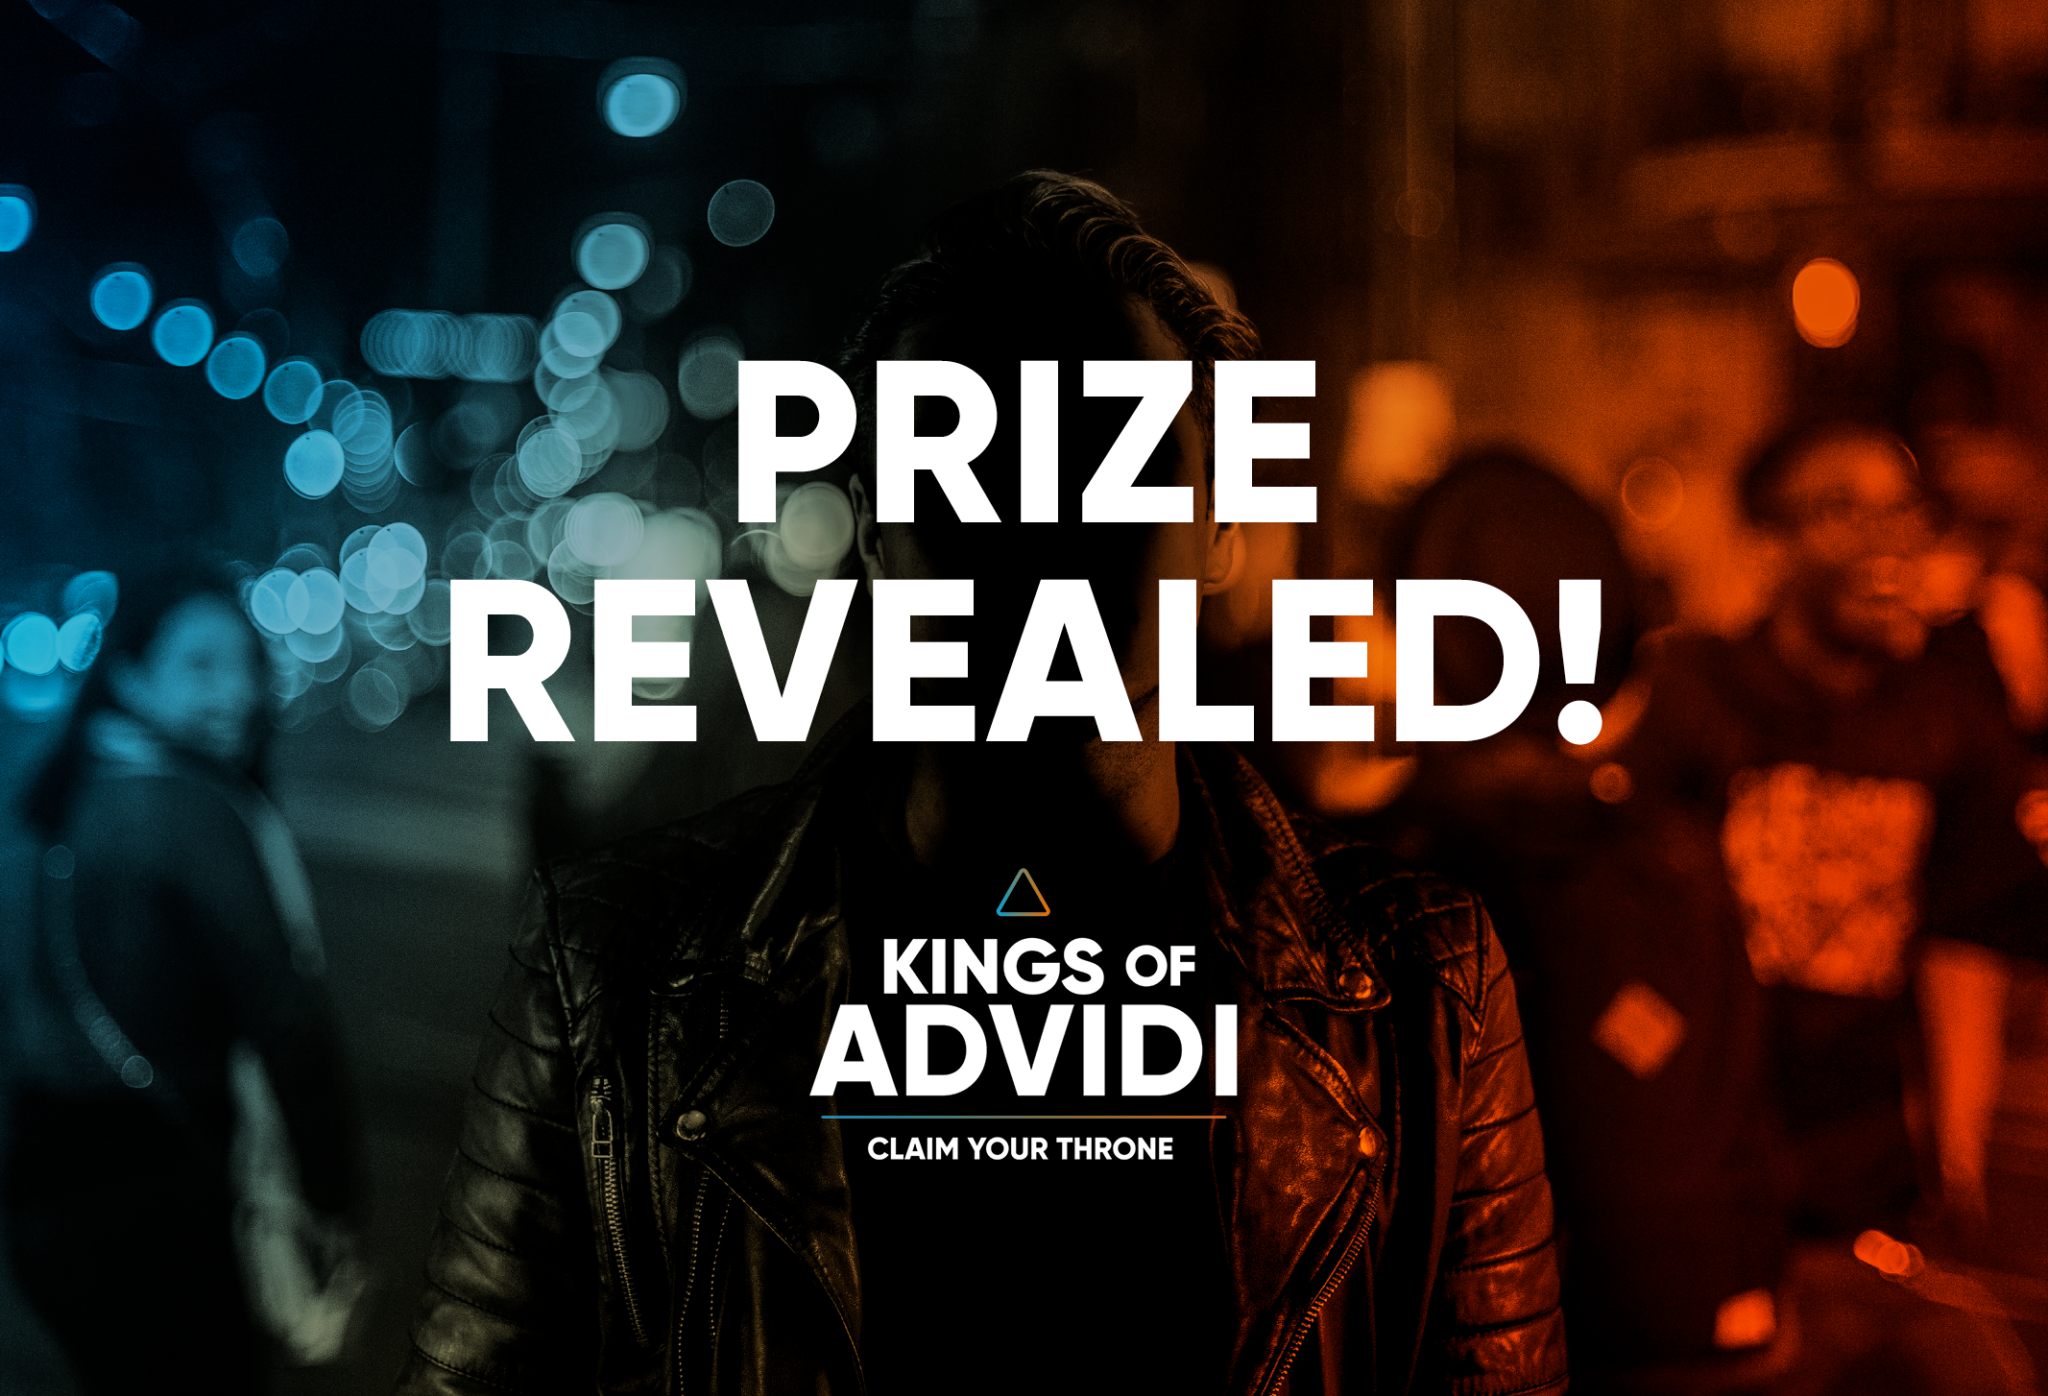 REVEALED: Feast Your Eyes On The Kings of Advidi Prize!